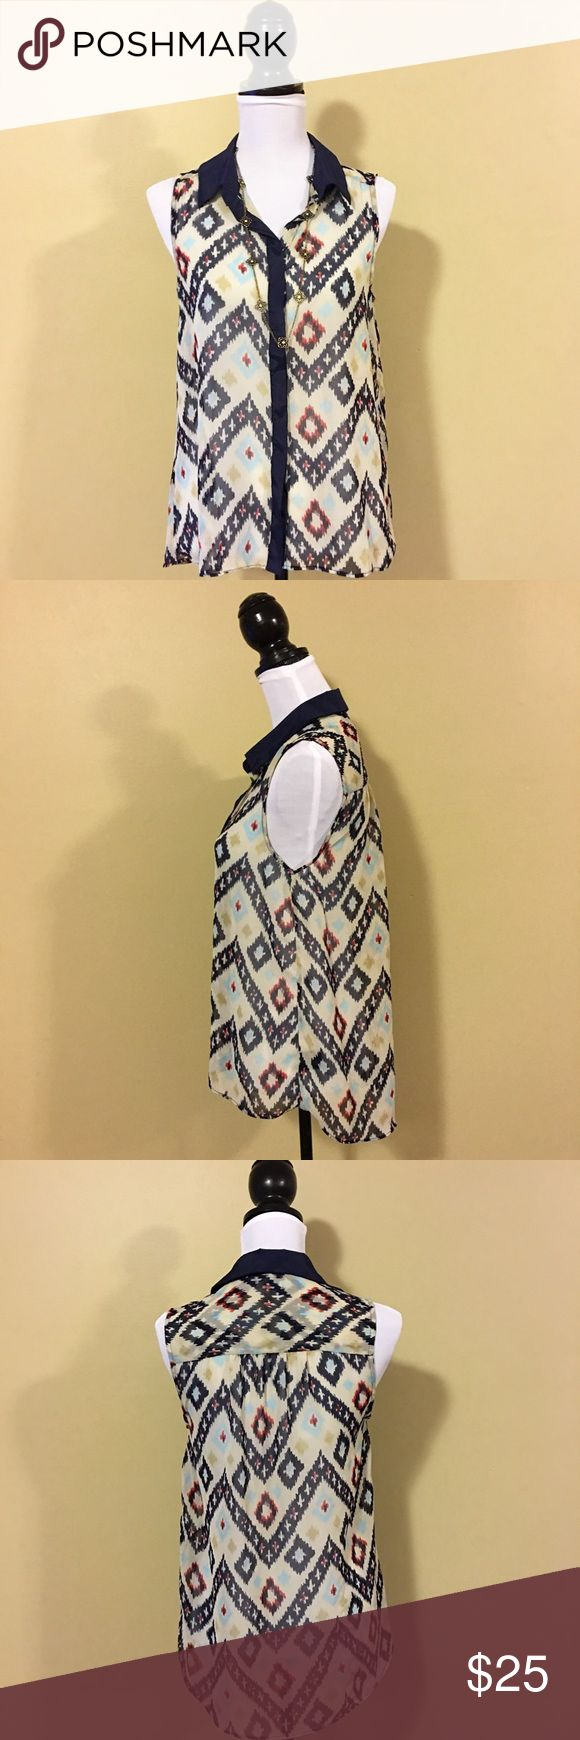 Walter Baker Sleeveless Tribal Print Top Walter Baker Sleeveless Tribal Print Top - Size Small. So many options with this top! W118 by Walter Baker Tops Blouses